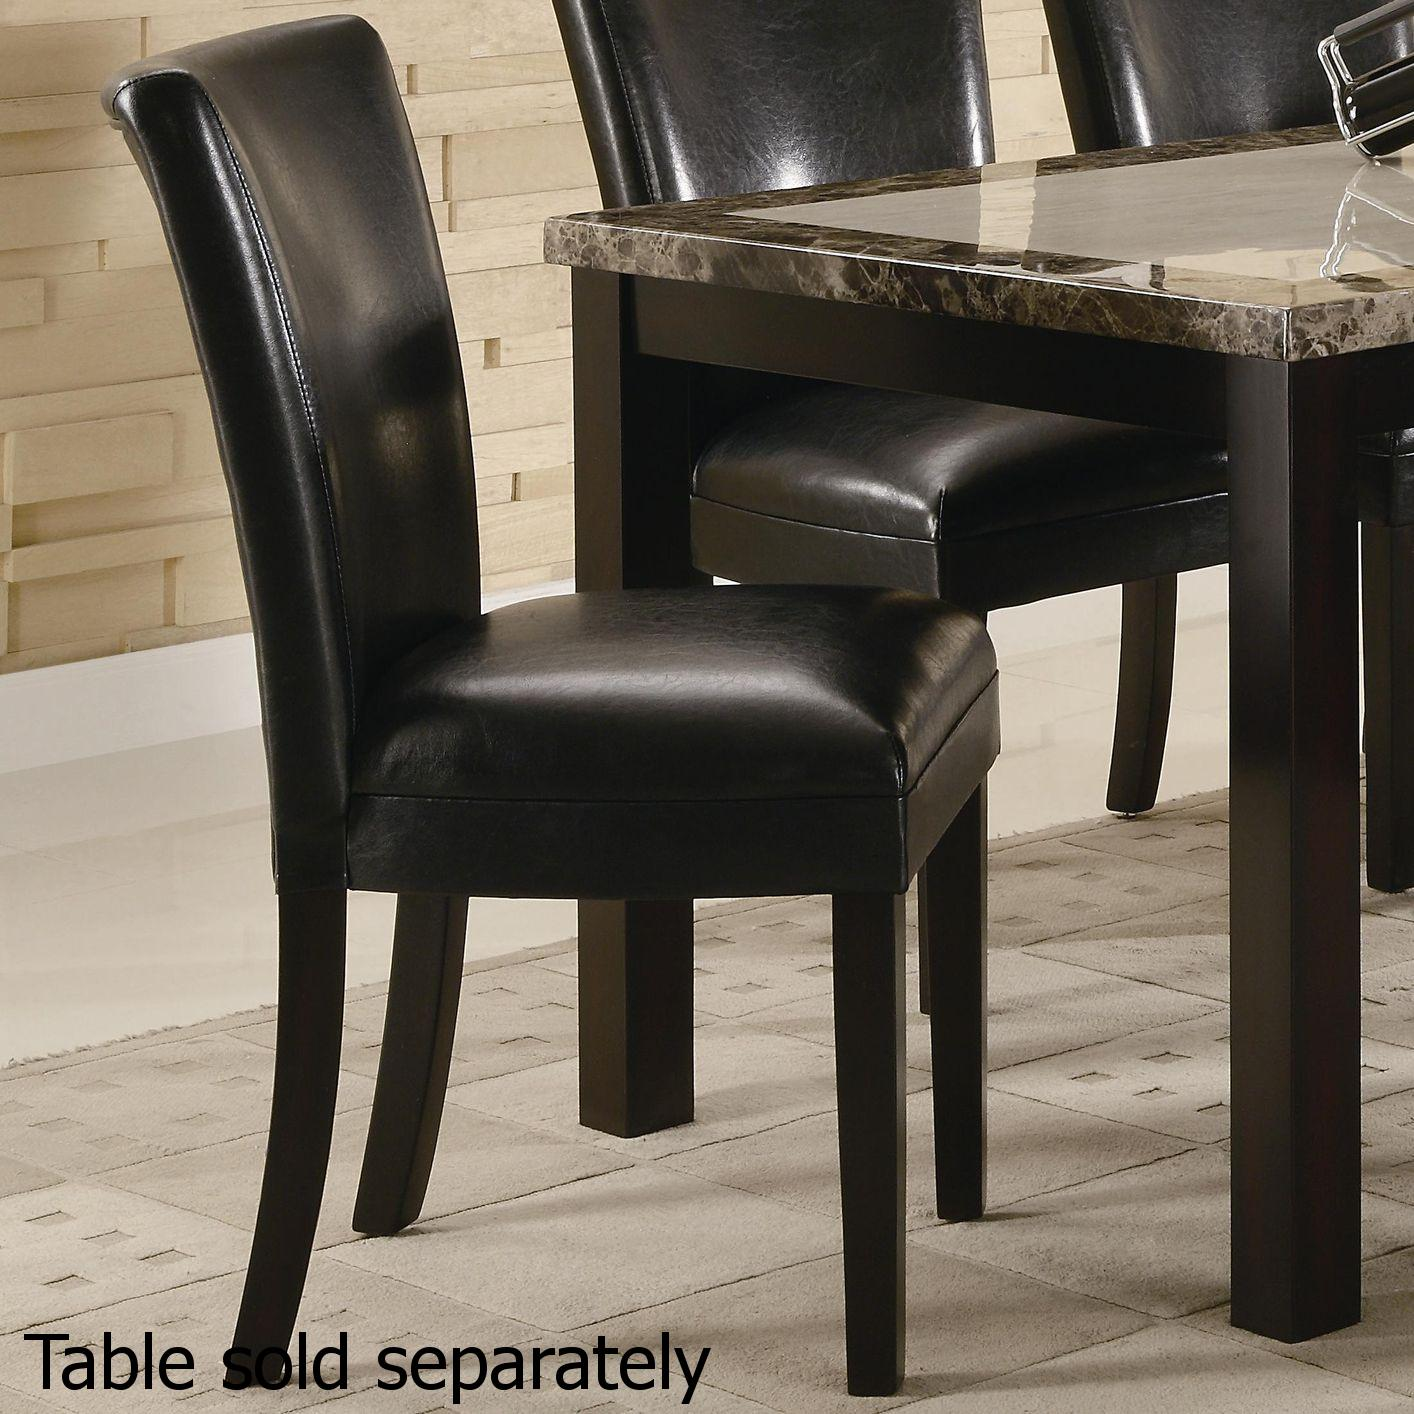 Black Wood Dining Chair Steal A Sofa Furniture Outlet Los Angeles CA